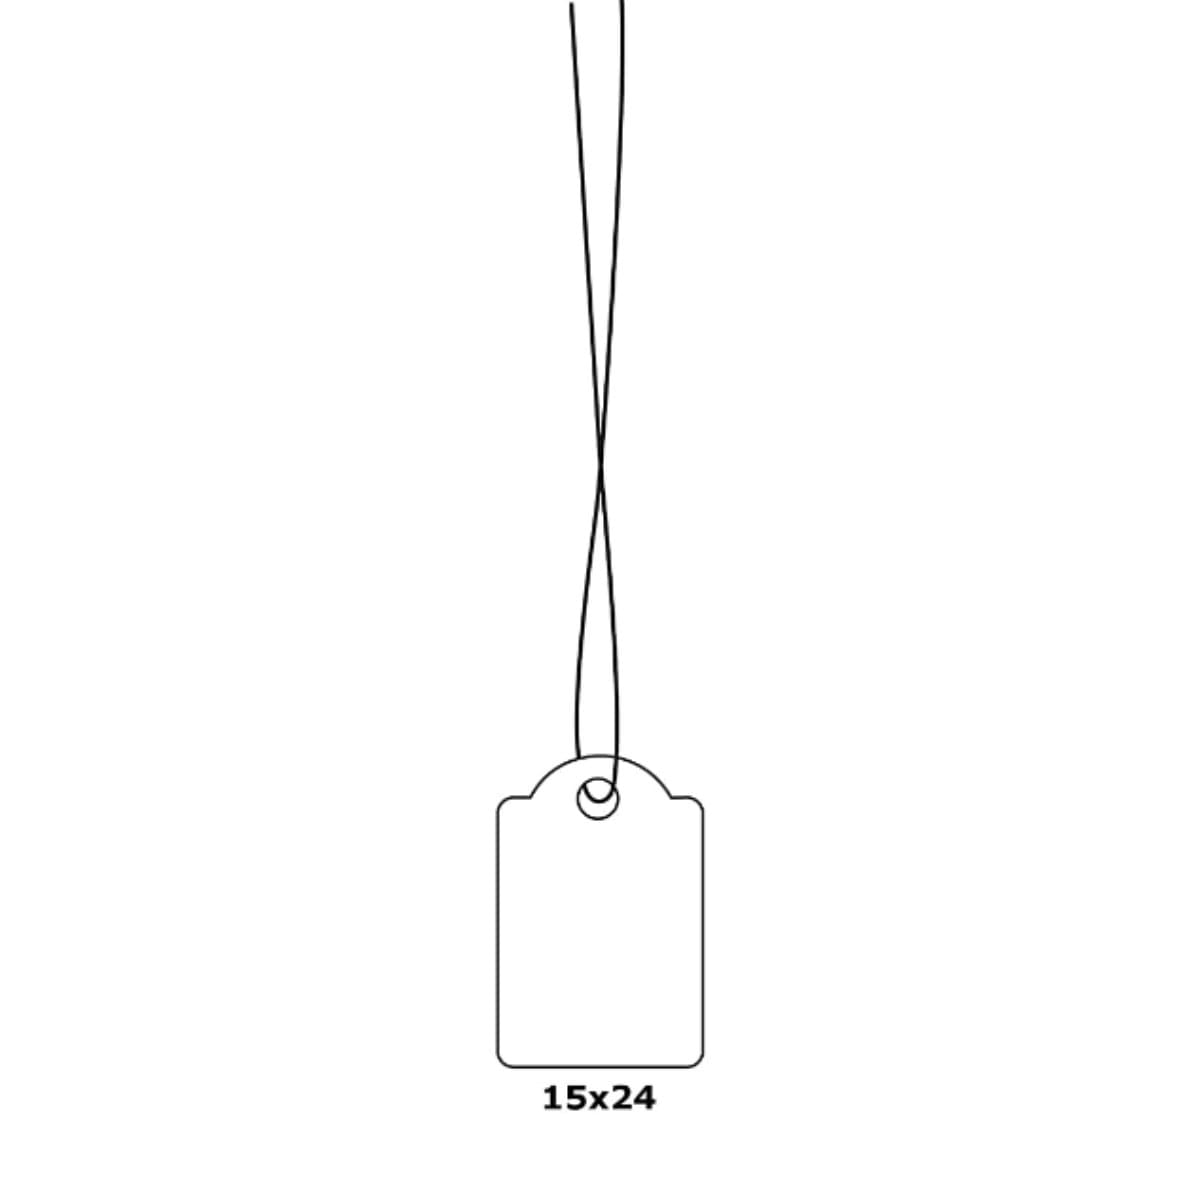 Herma Merchandise Tags with String, 15 x 24 mm, White